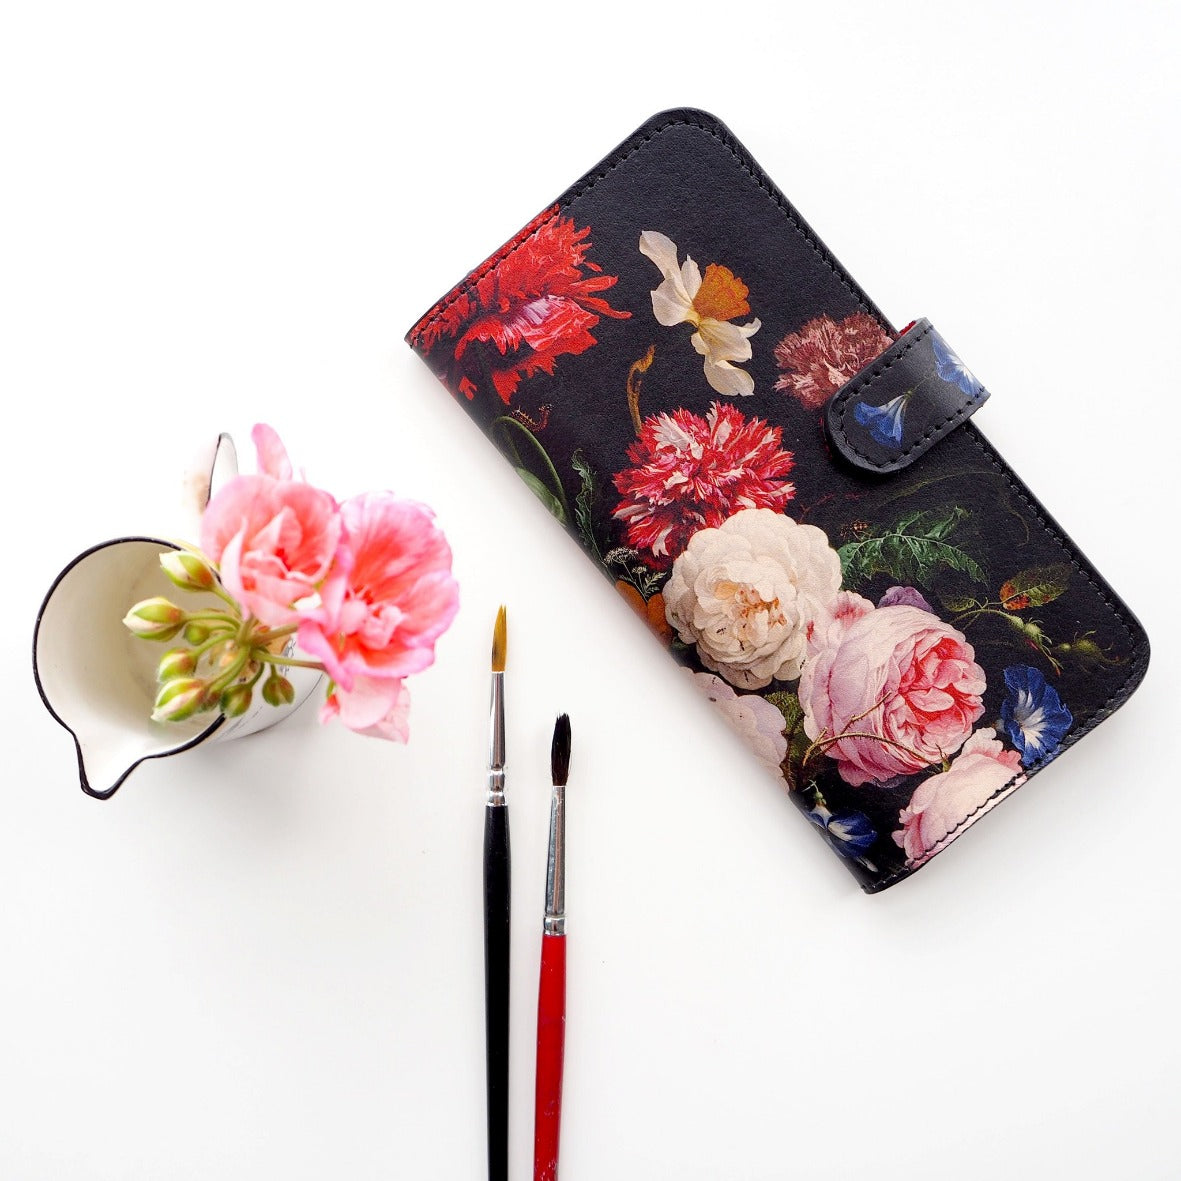 3.	Real leather - environmentally friendly phone case uk - Phone case for Samsung Galaxy S10 plus / S20 / S10E-  Beautiful floral  - Dutch print - Rachel Rusch